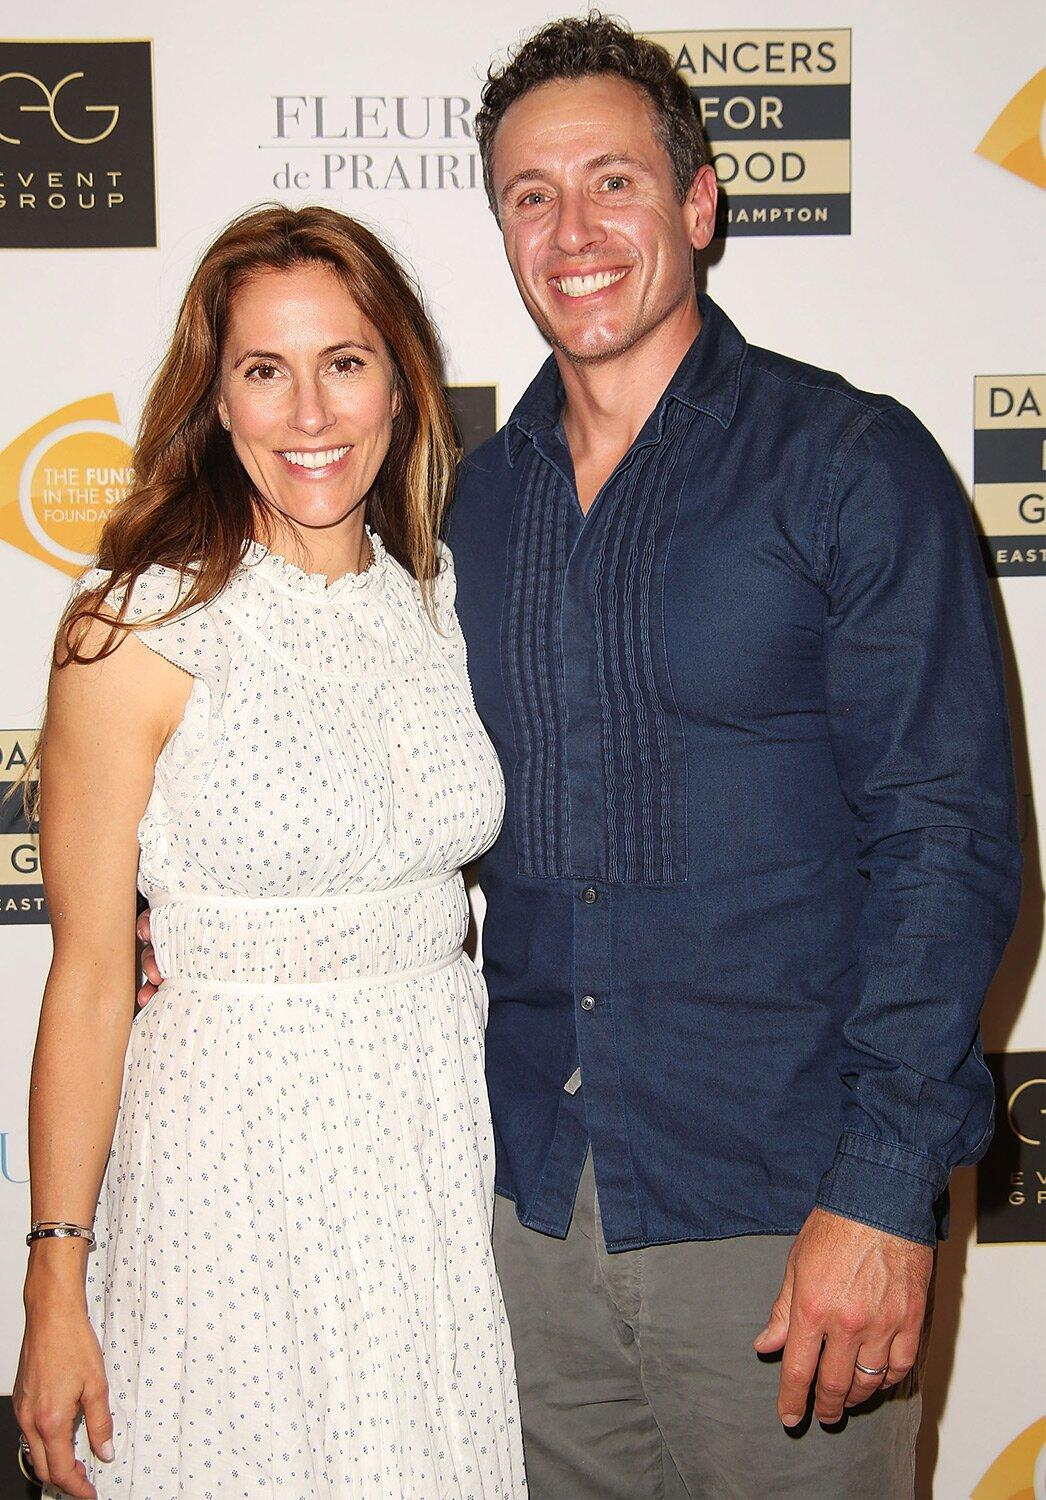 Chris Cuomo Says He U0026 39 S U0026 39 Sick Of Being Sick U0026 39 As Wife Opens